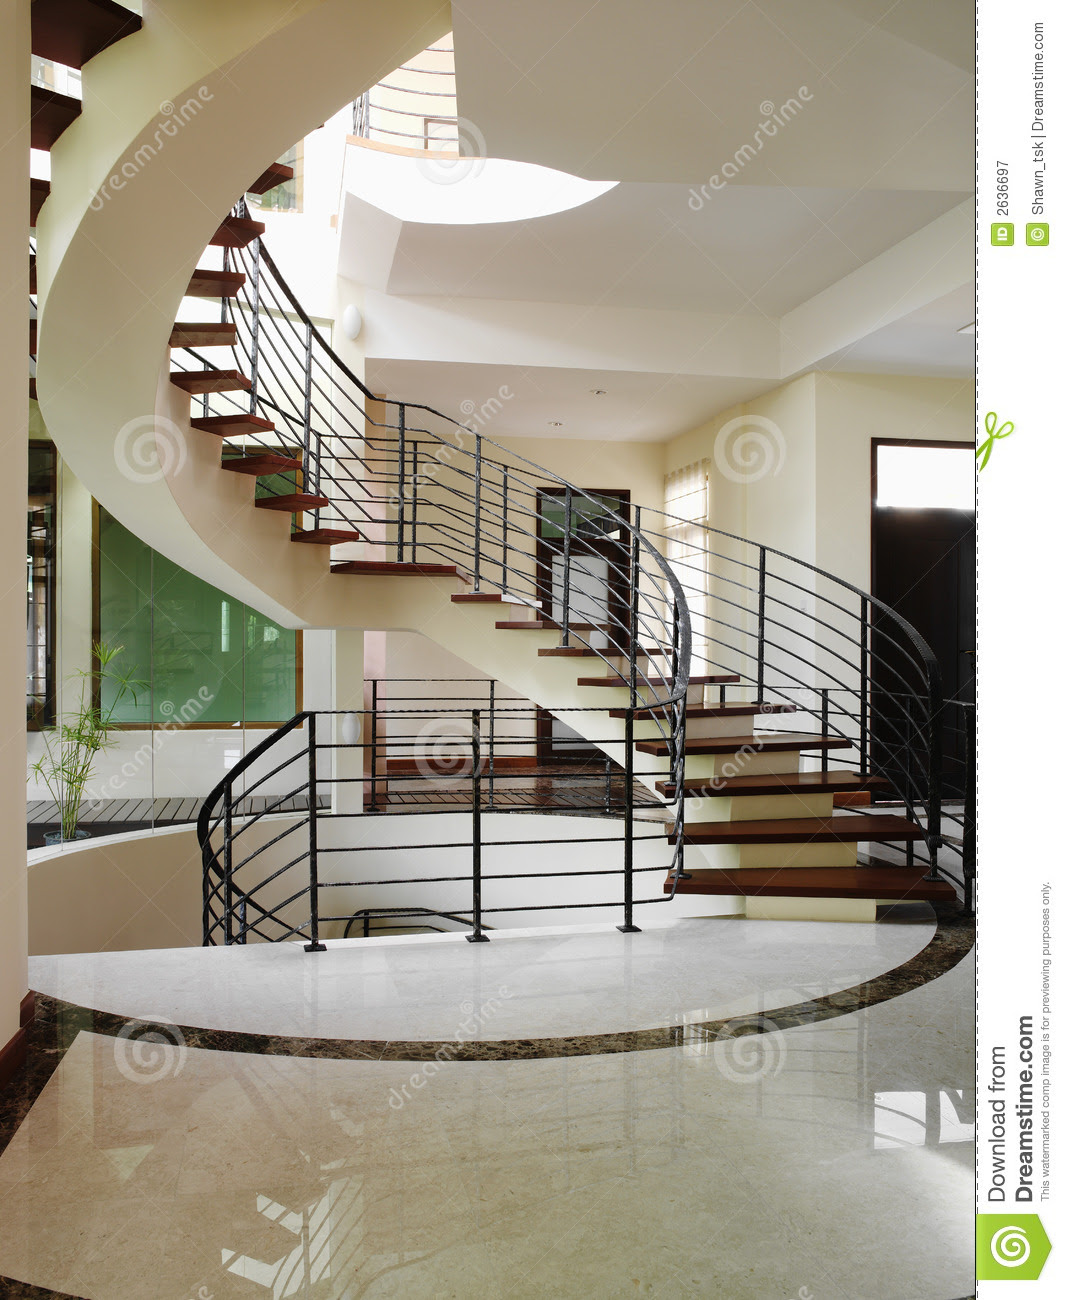 Interior Design - Stairs Royalty Free Stock Photography - Image